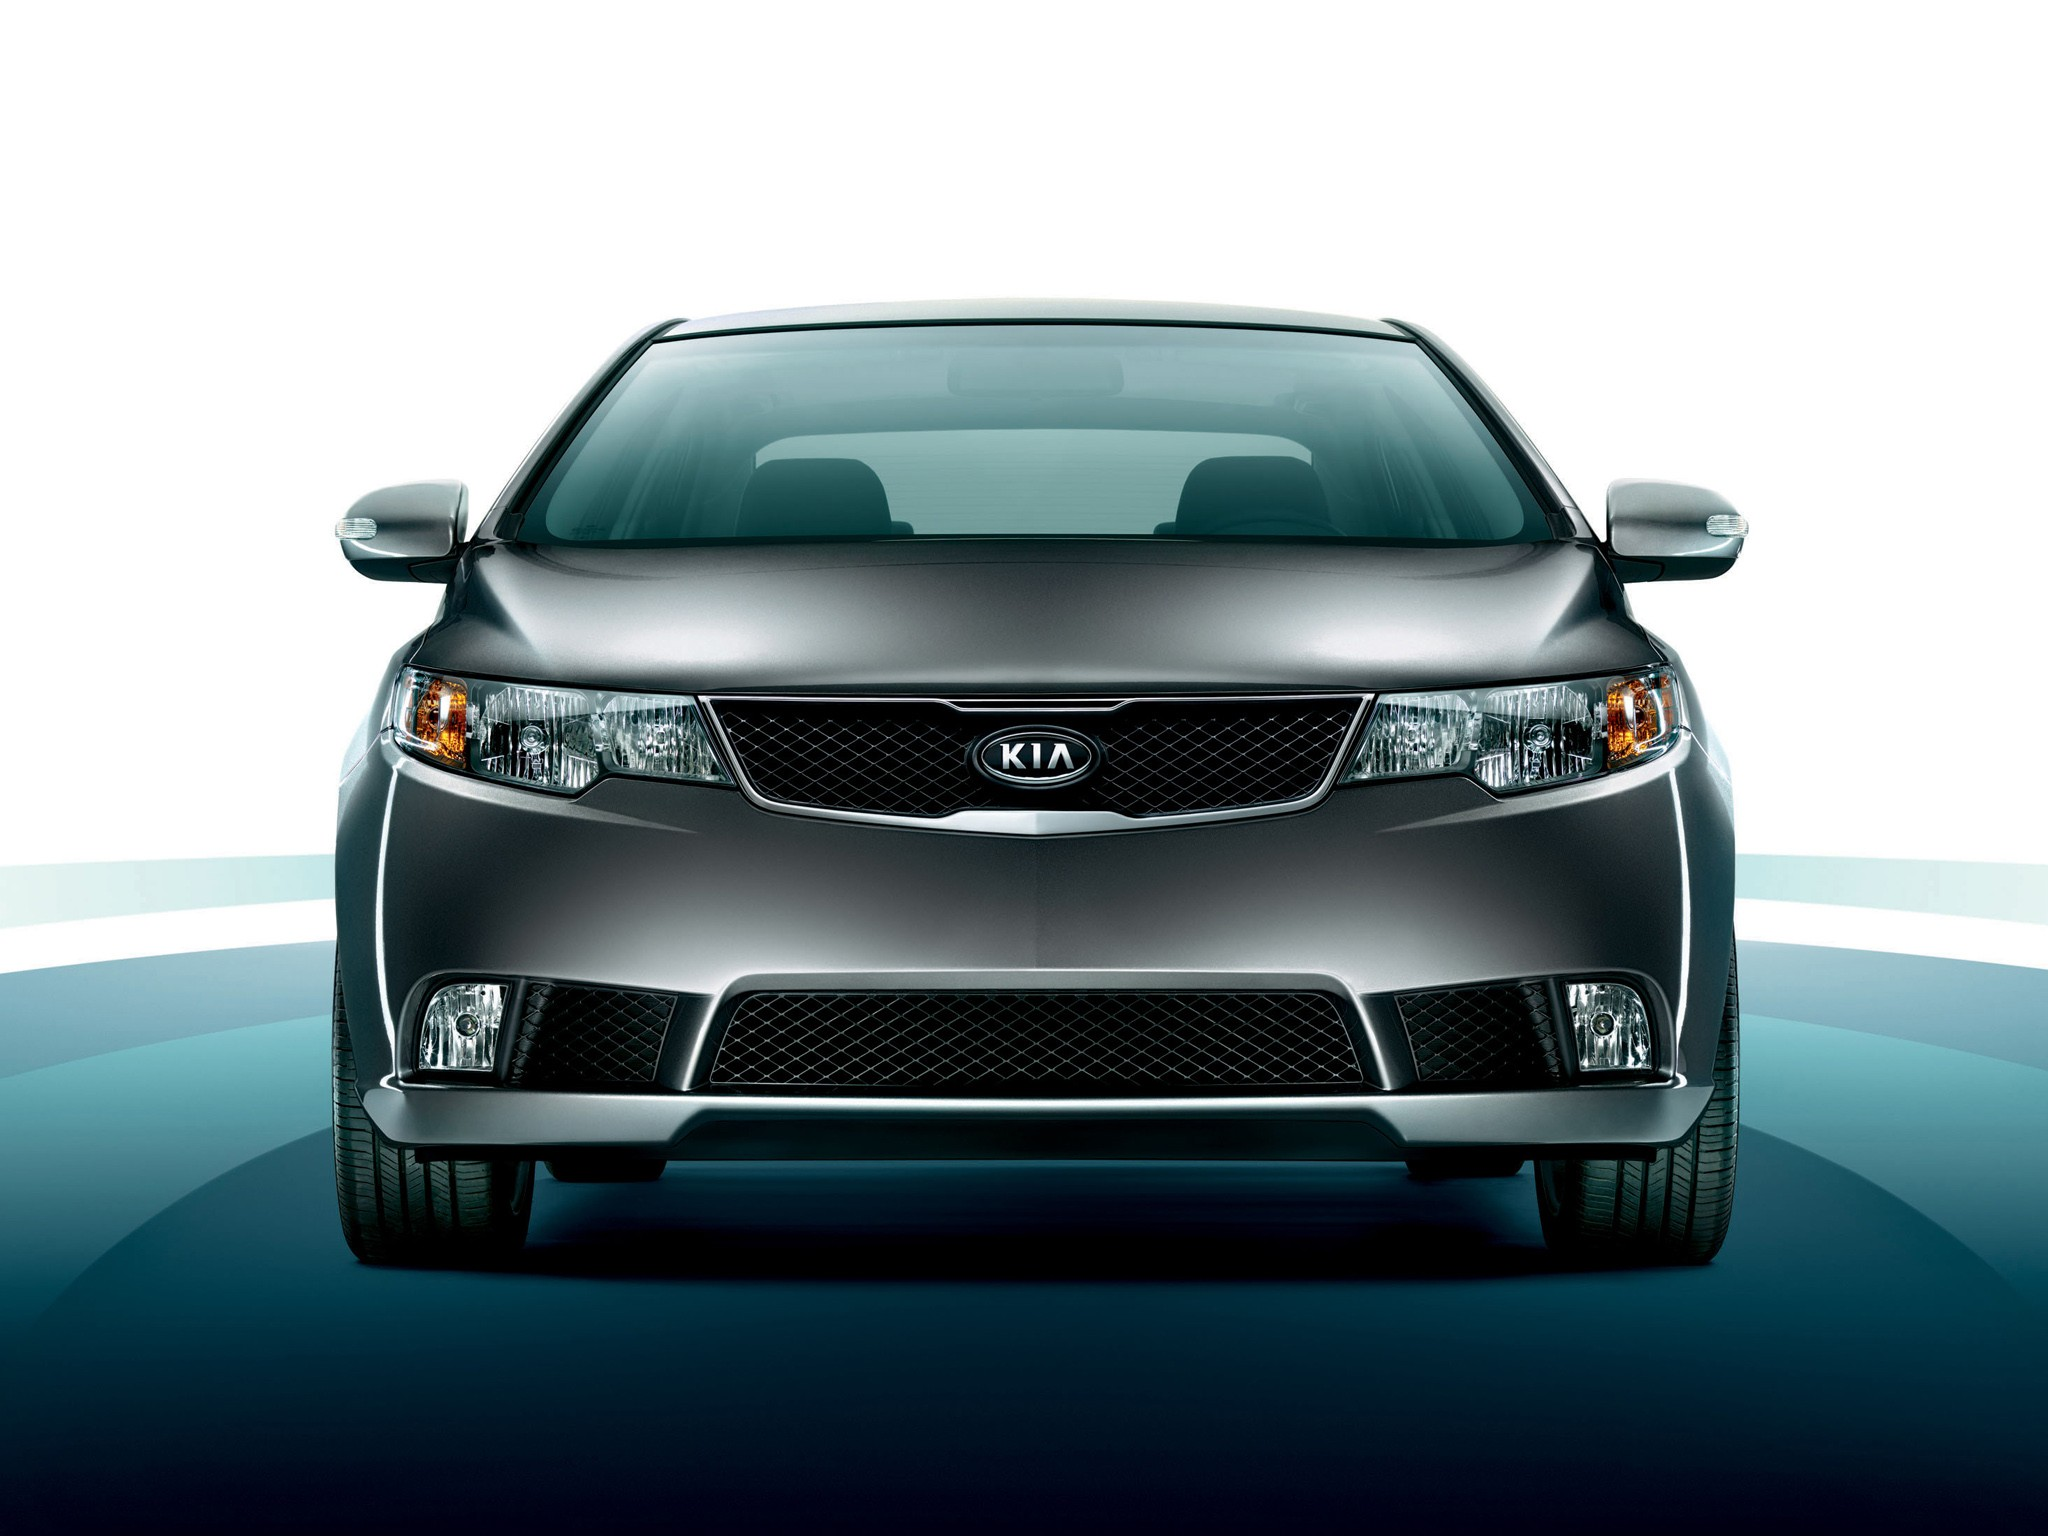 kia forte specs  u0026 photos - 2009  2010  2011  2012  2013